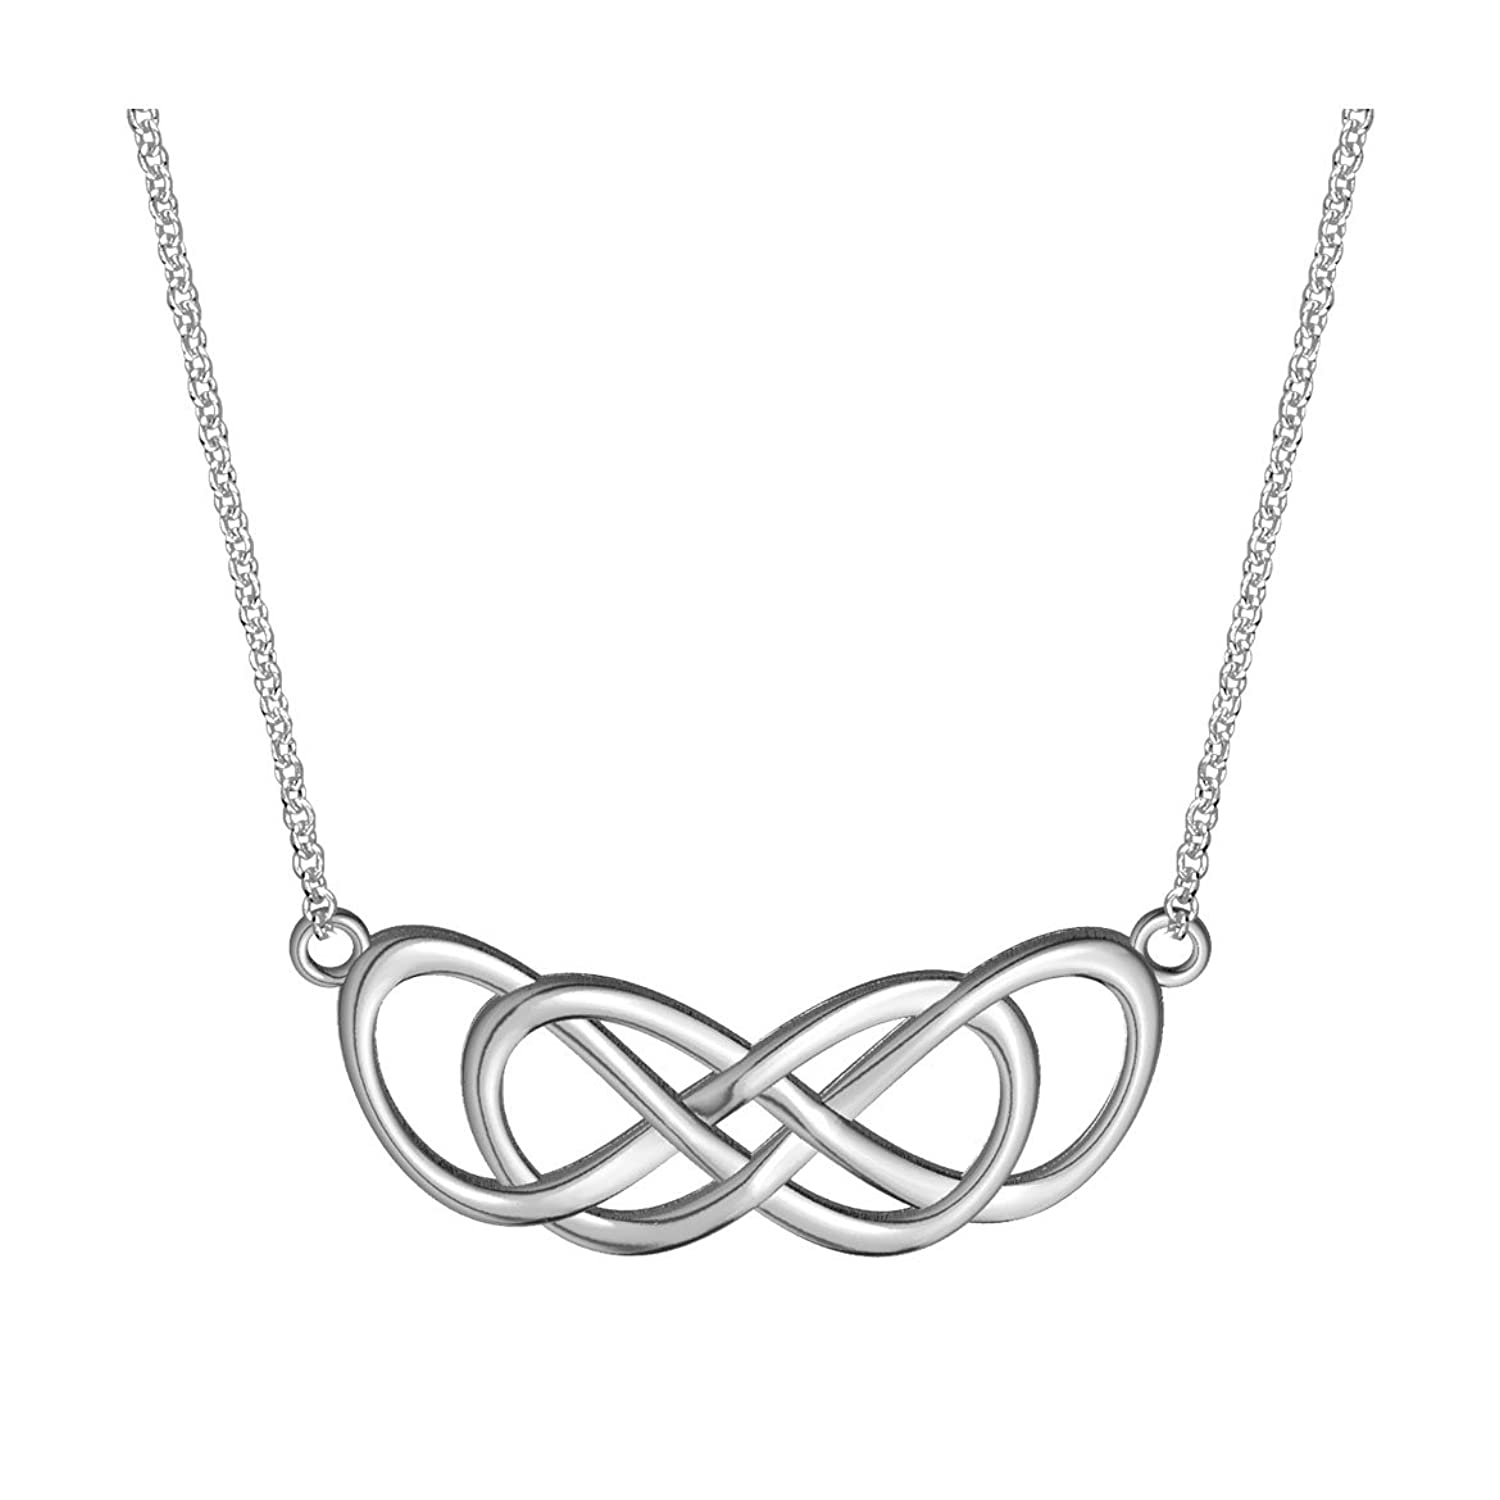 Large Curved Double Infinity Symbol Charm And Chain Lovers Charm